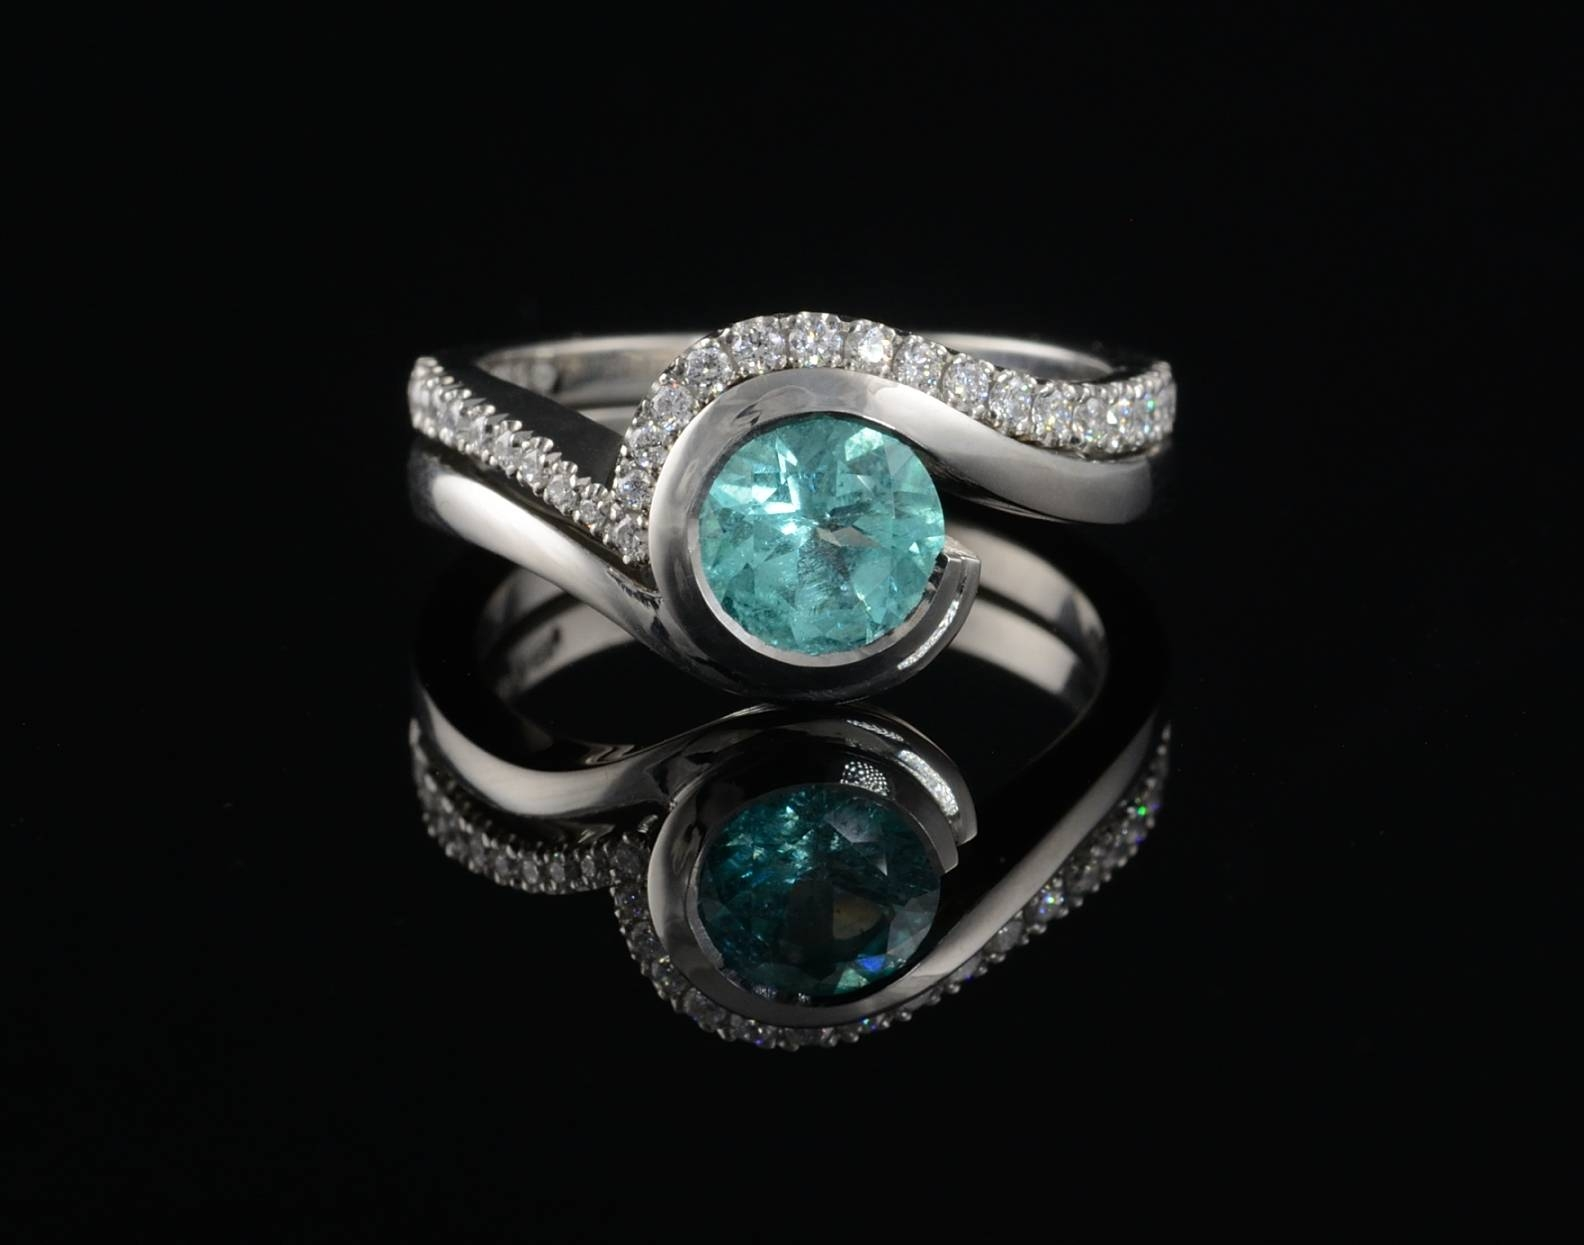 Engagement Rings : Celtic Engagement Rings Awesome Engagement Within Emerald Celtic Engagement Rings (View 6 of 15)